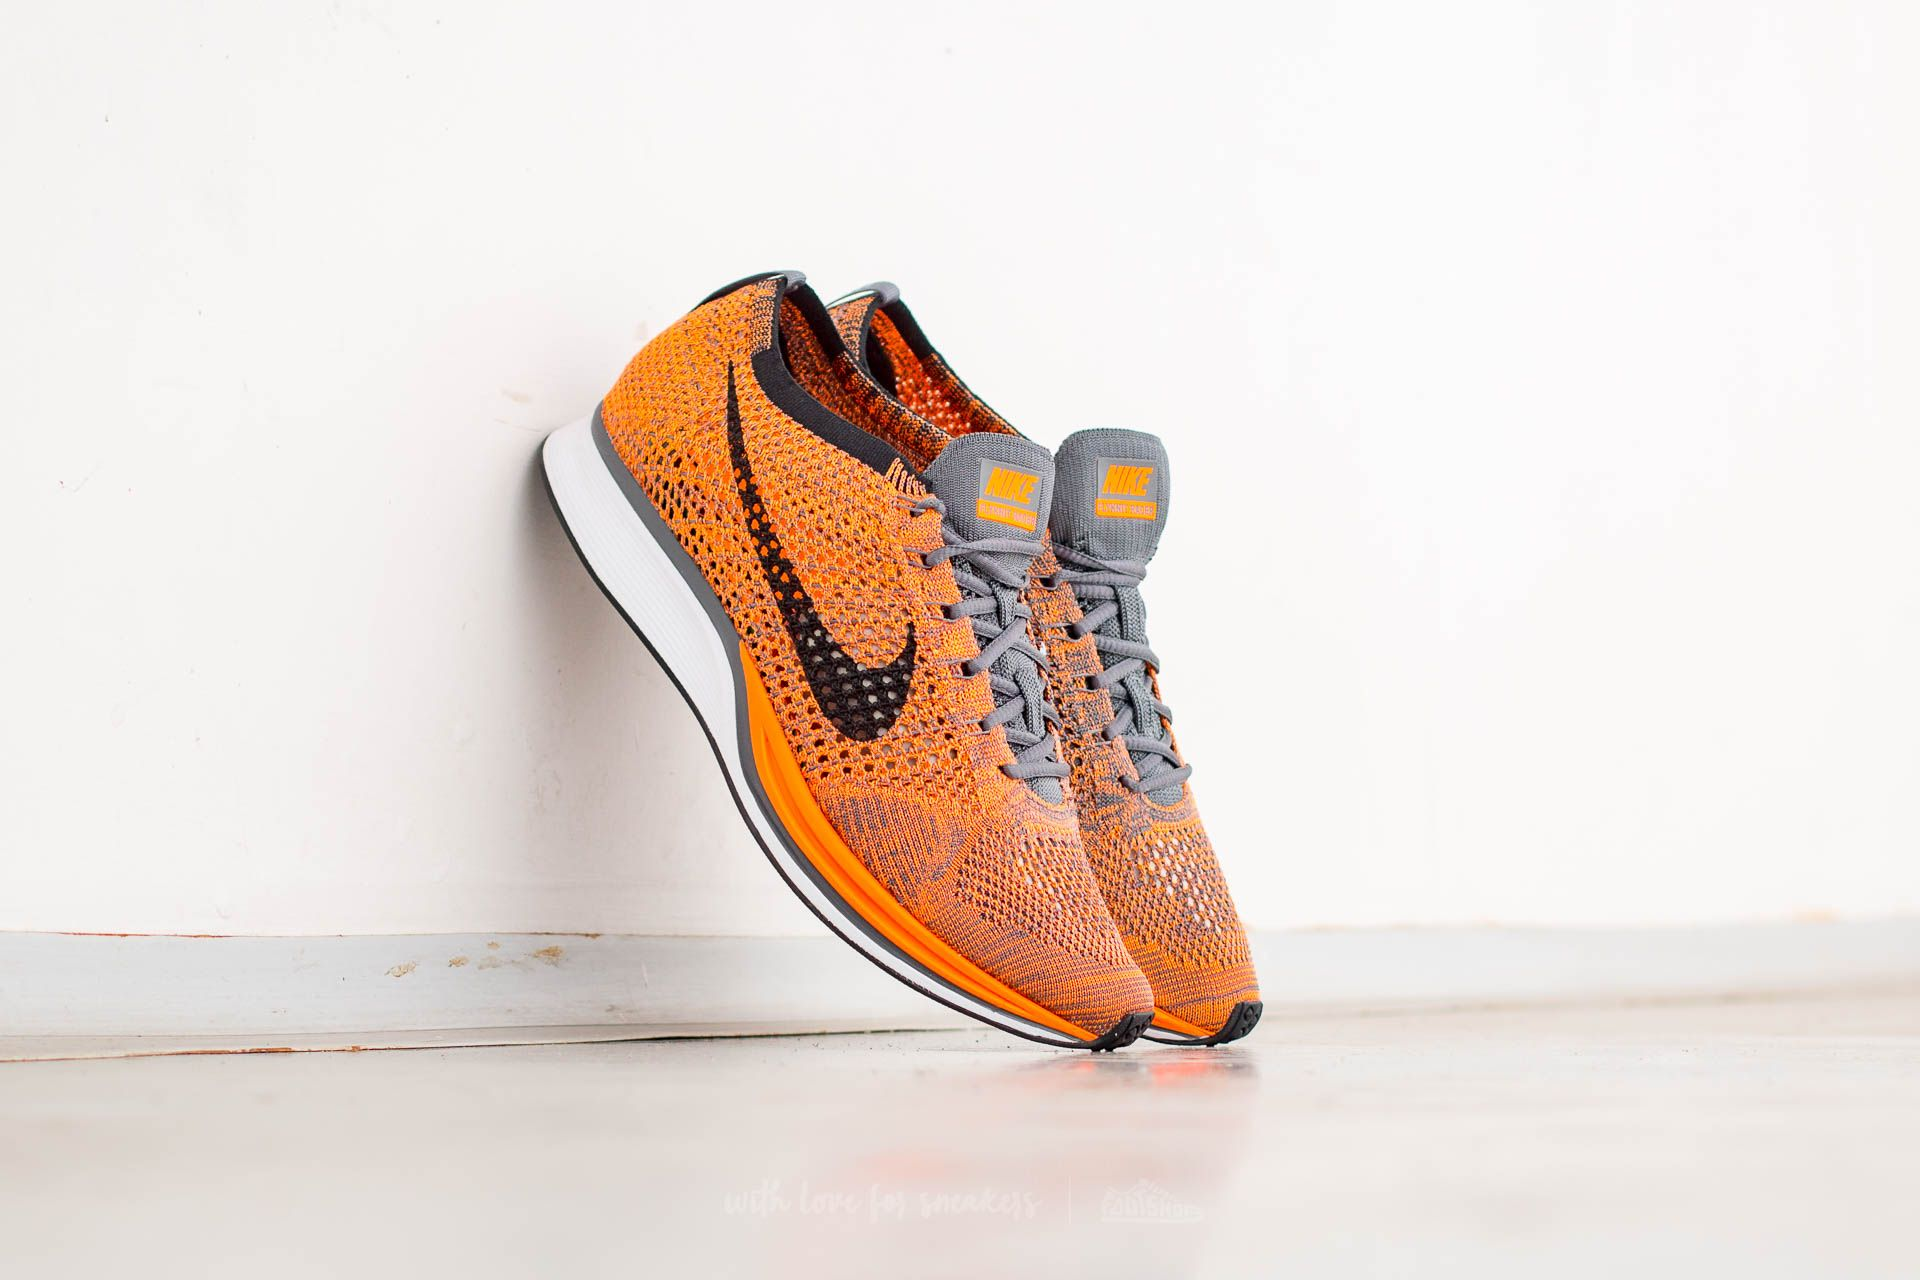 895dced7e3bf3 Nike Flyknit Racer Total Orange  White-Dark Grey